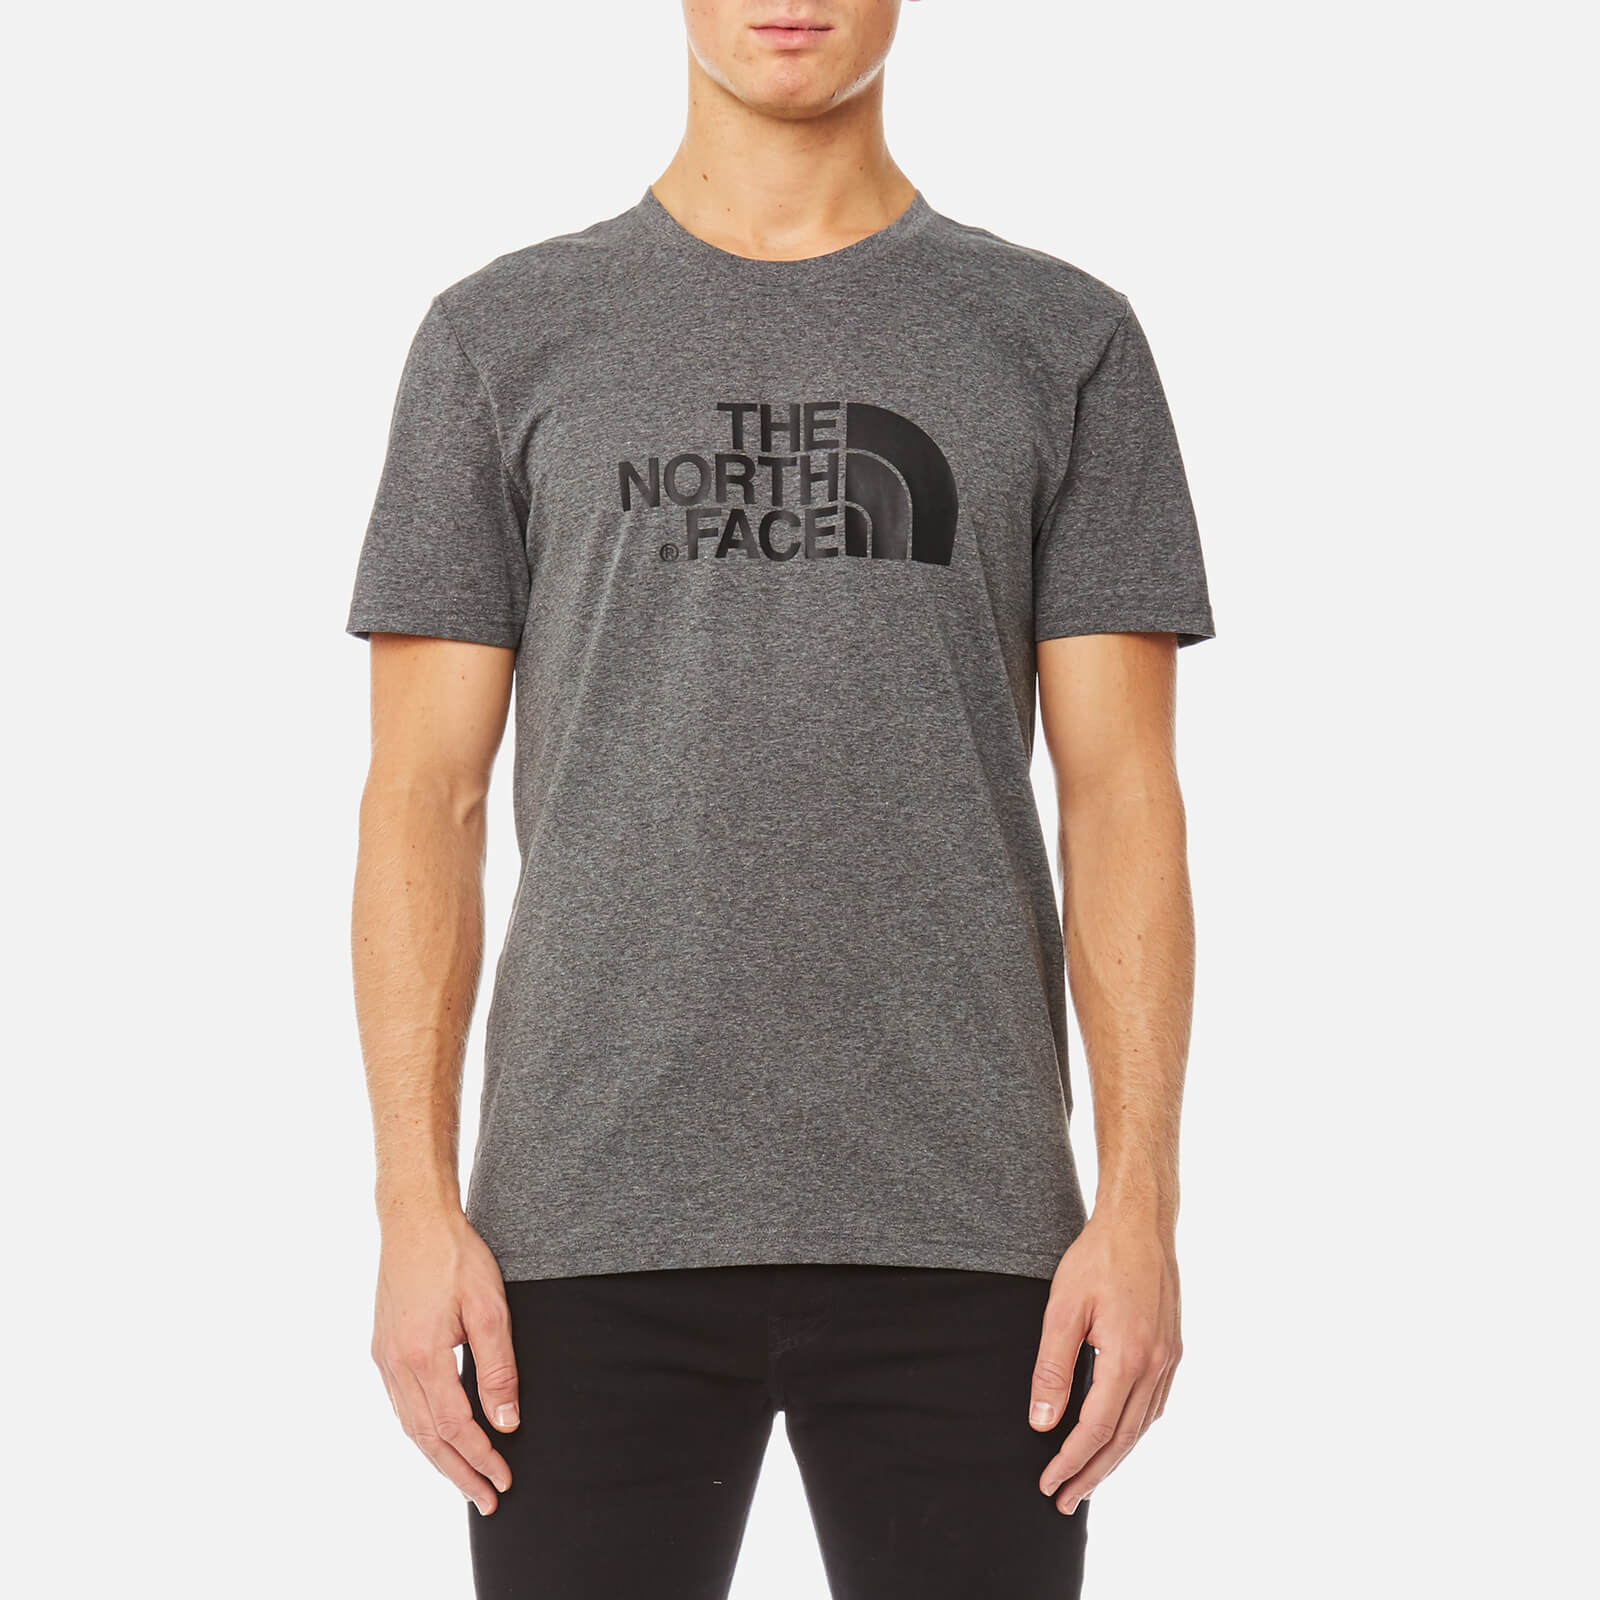 f1e25c3aacf7a The North Face Men s Easy T-Shirt - TNF Medium Grey Heather Mens Clothing